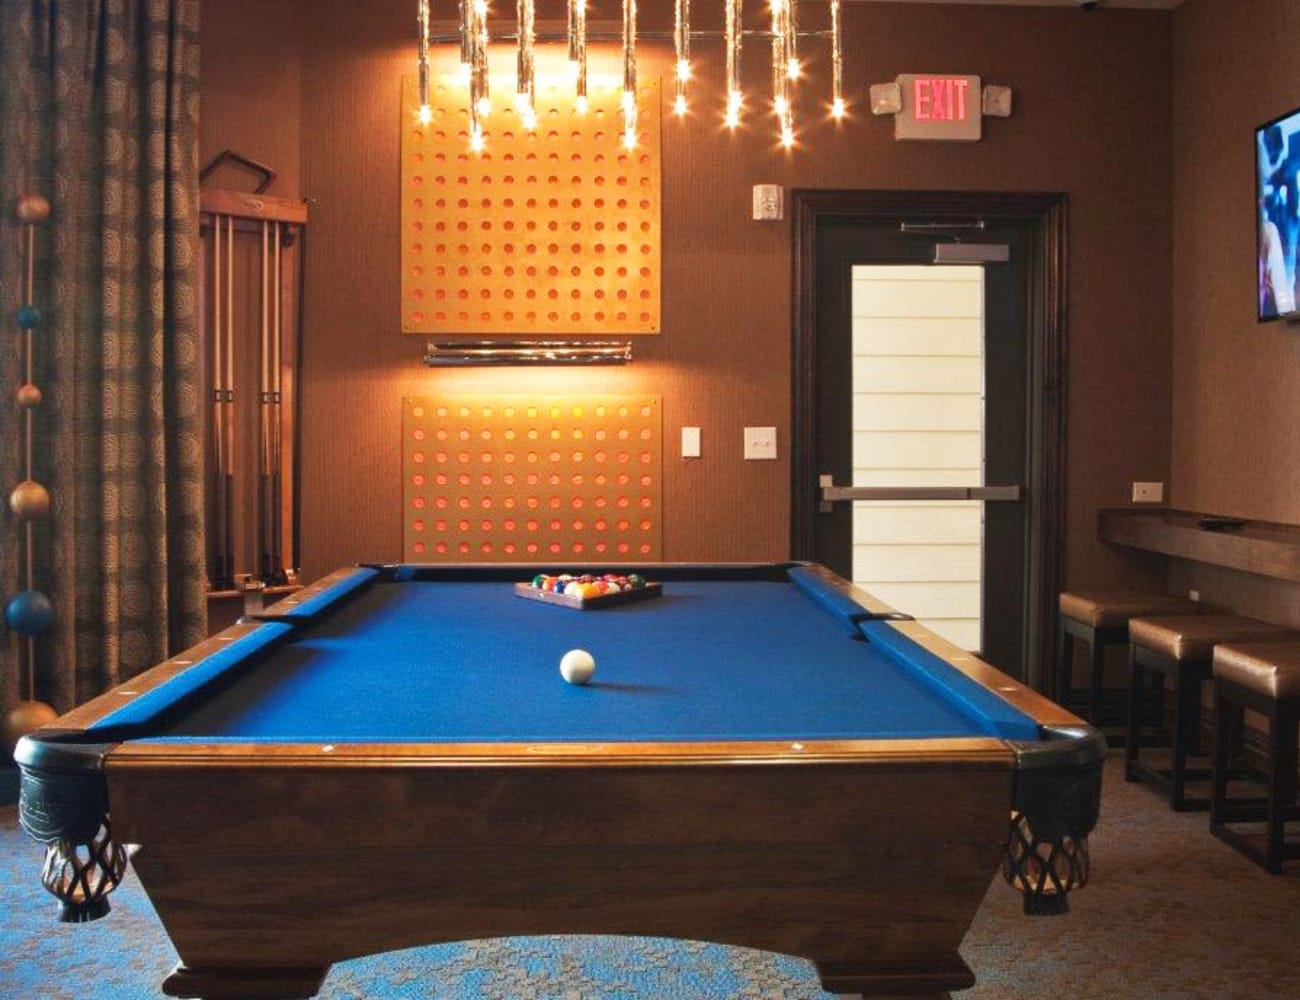 Resident clubhouse with billiards table and more at The Blvd in Irving, Texas